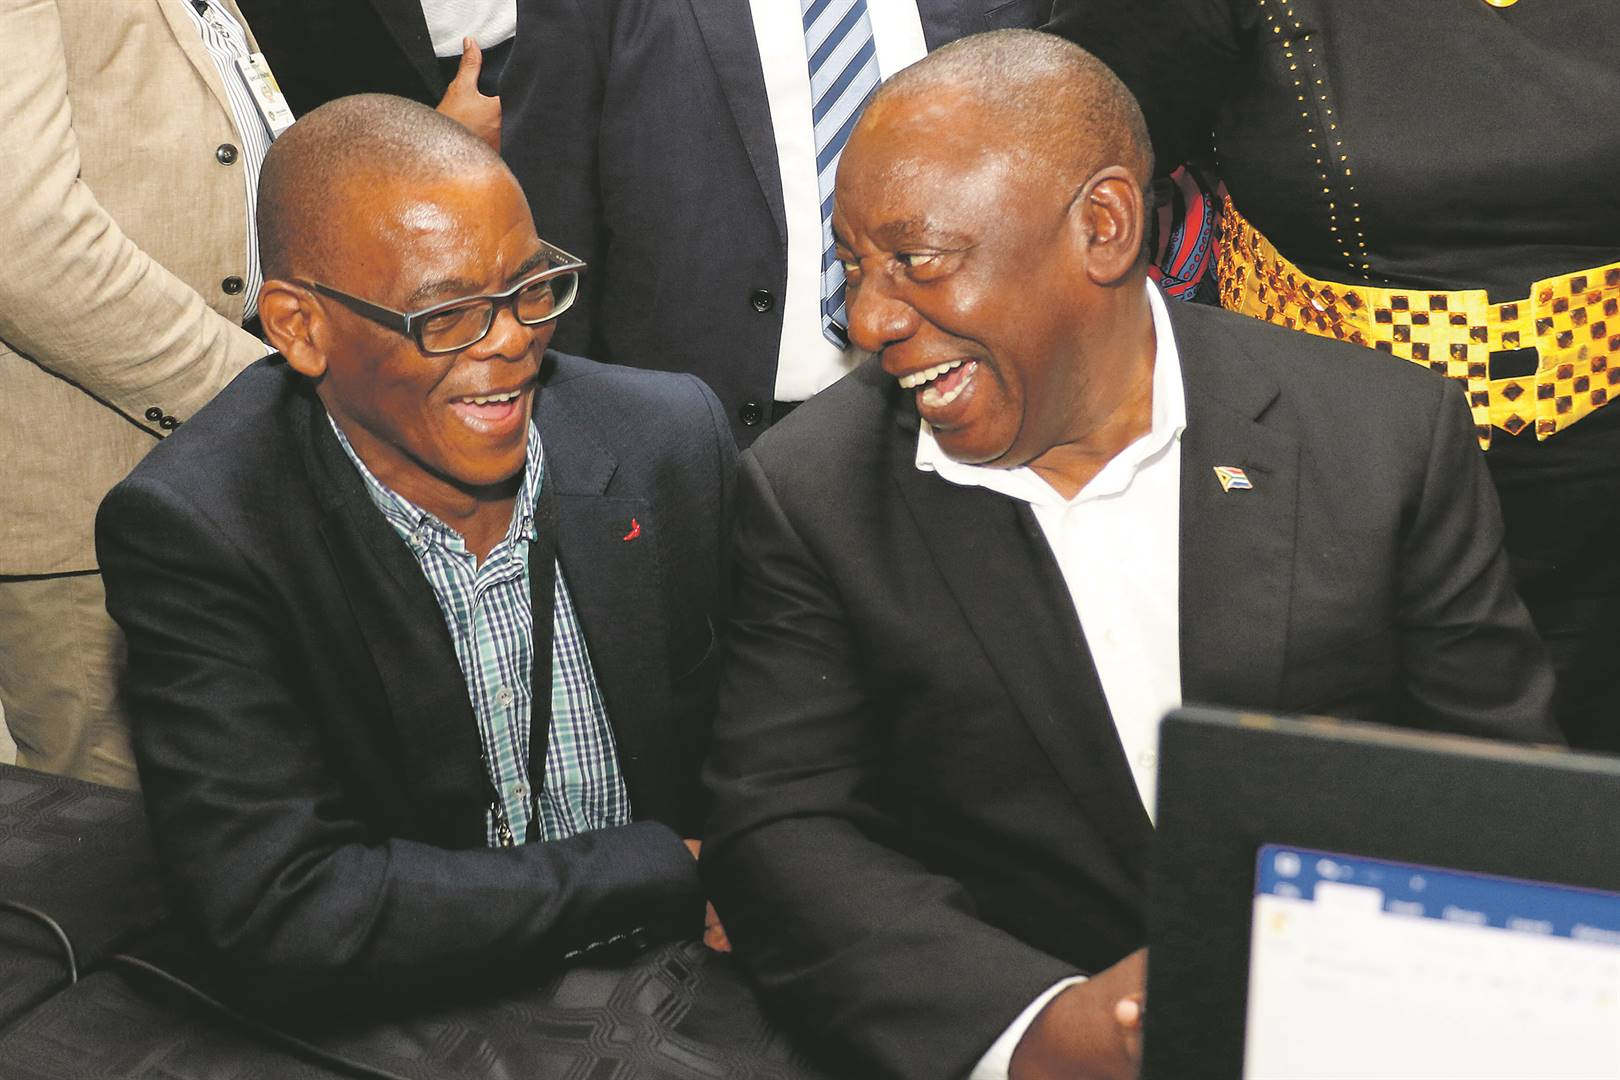 Ace Magashule's claims of political plot 'will be clear in time' - ANC Free State secretary | News24